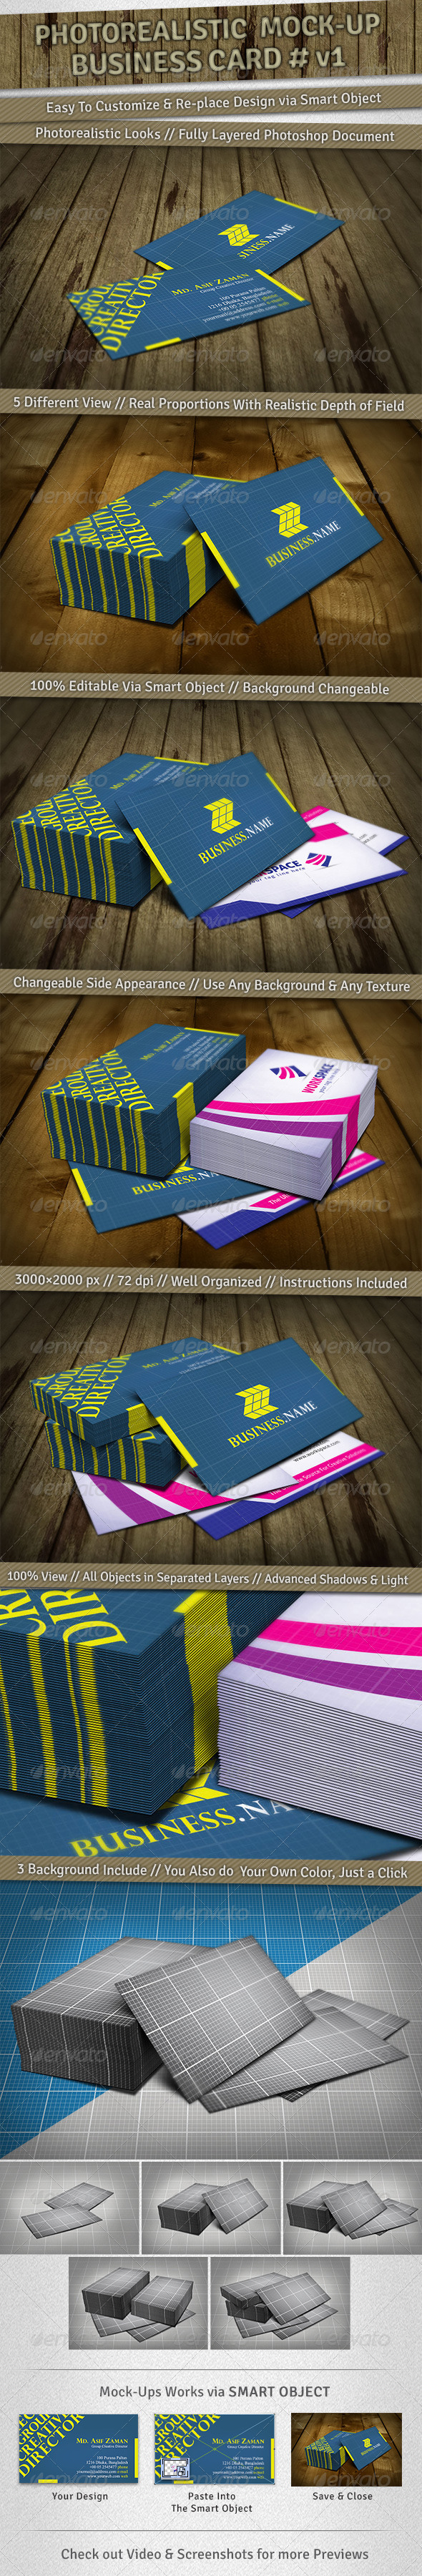 GraphicRiver 5 Mockup Photorealistic Business Card v1 3635138